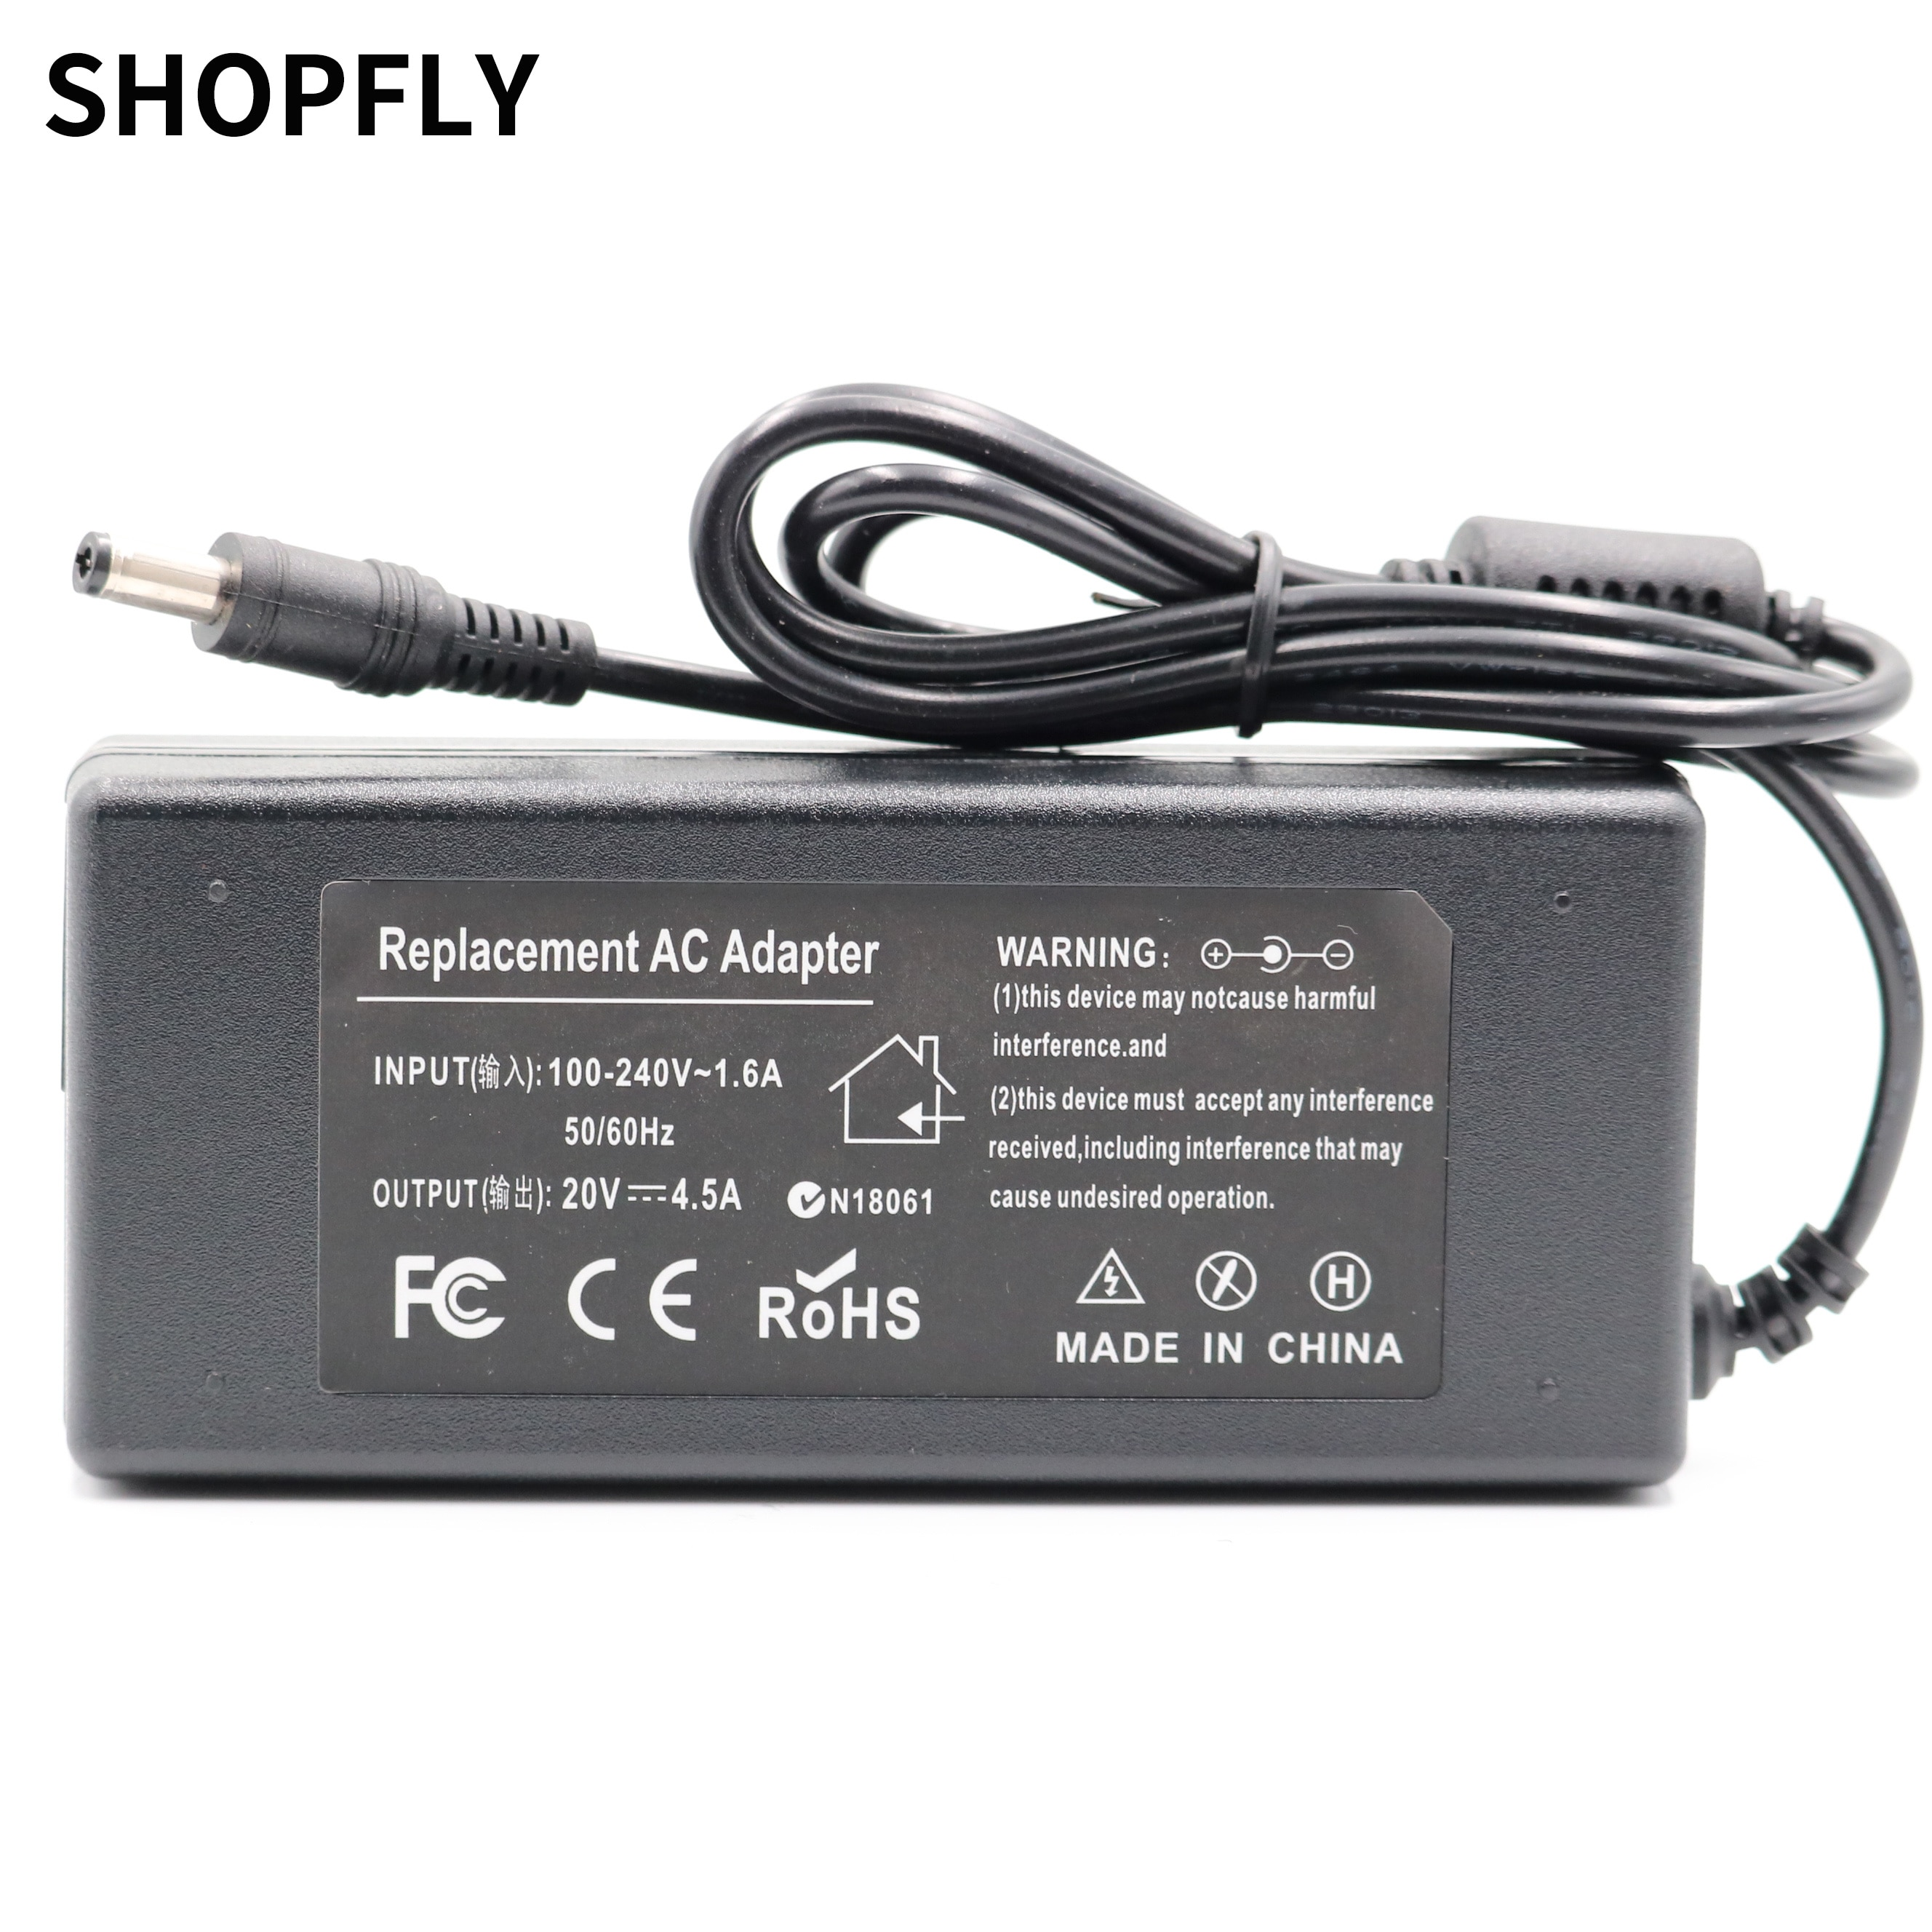 20V 4.5A 90W laptop adapter /battery charger / power supply / for lenovo G480 G485 G560 G560e G565 G570 G575 G580 G585 G780 100% new lenovo g570 g575 bottom case cover